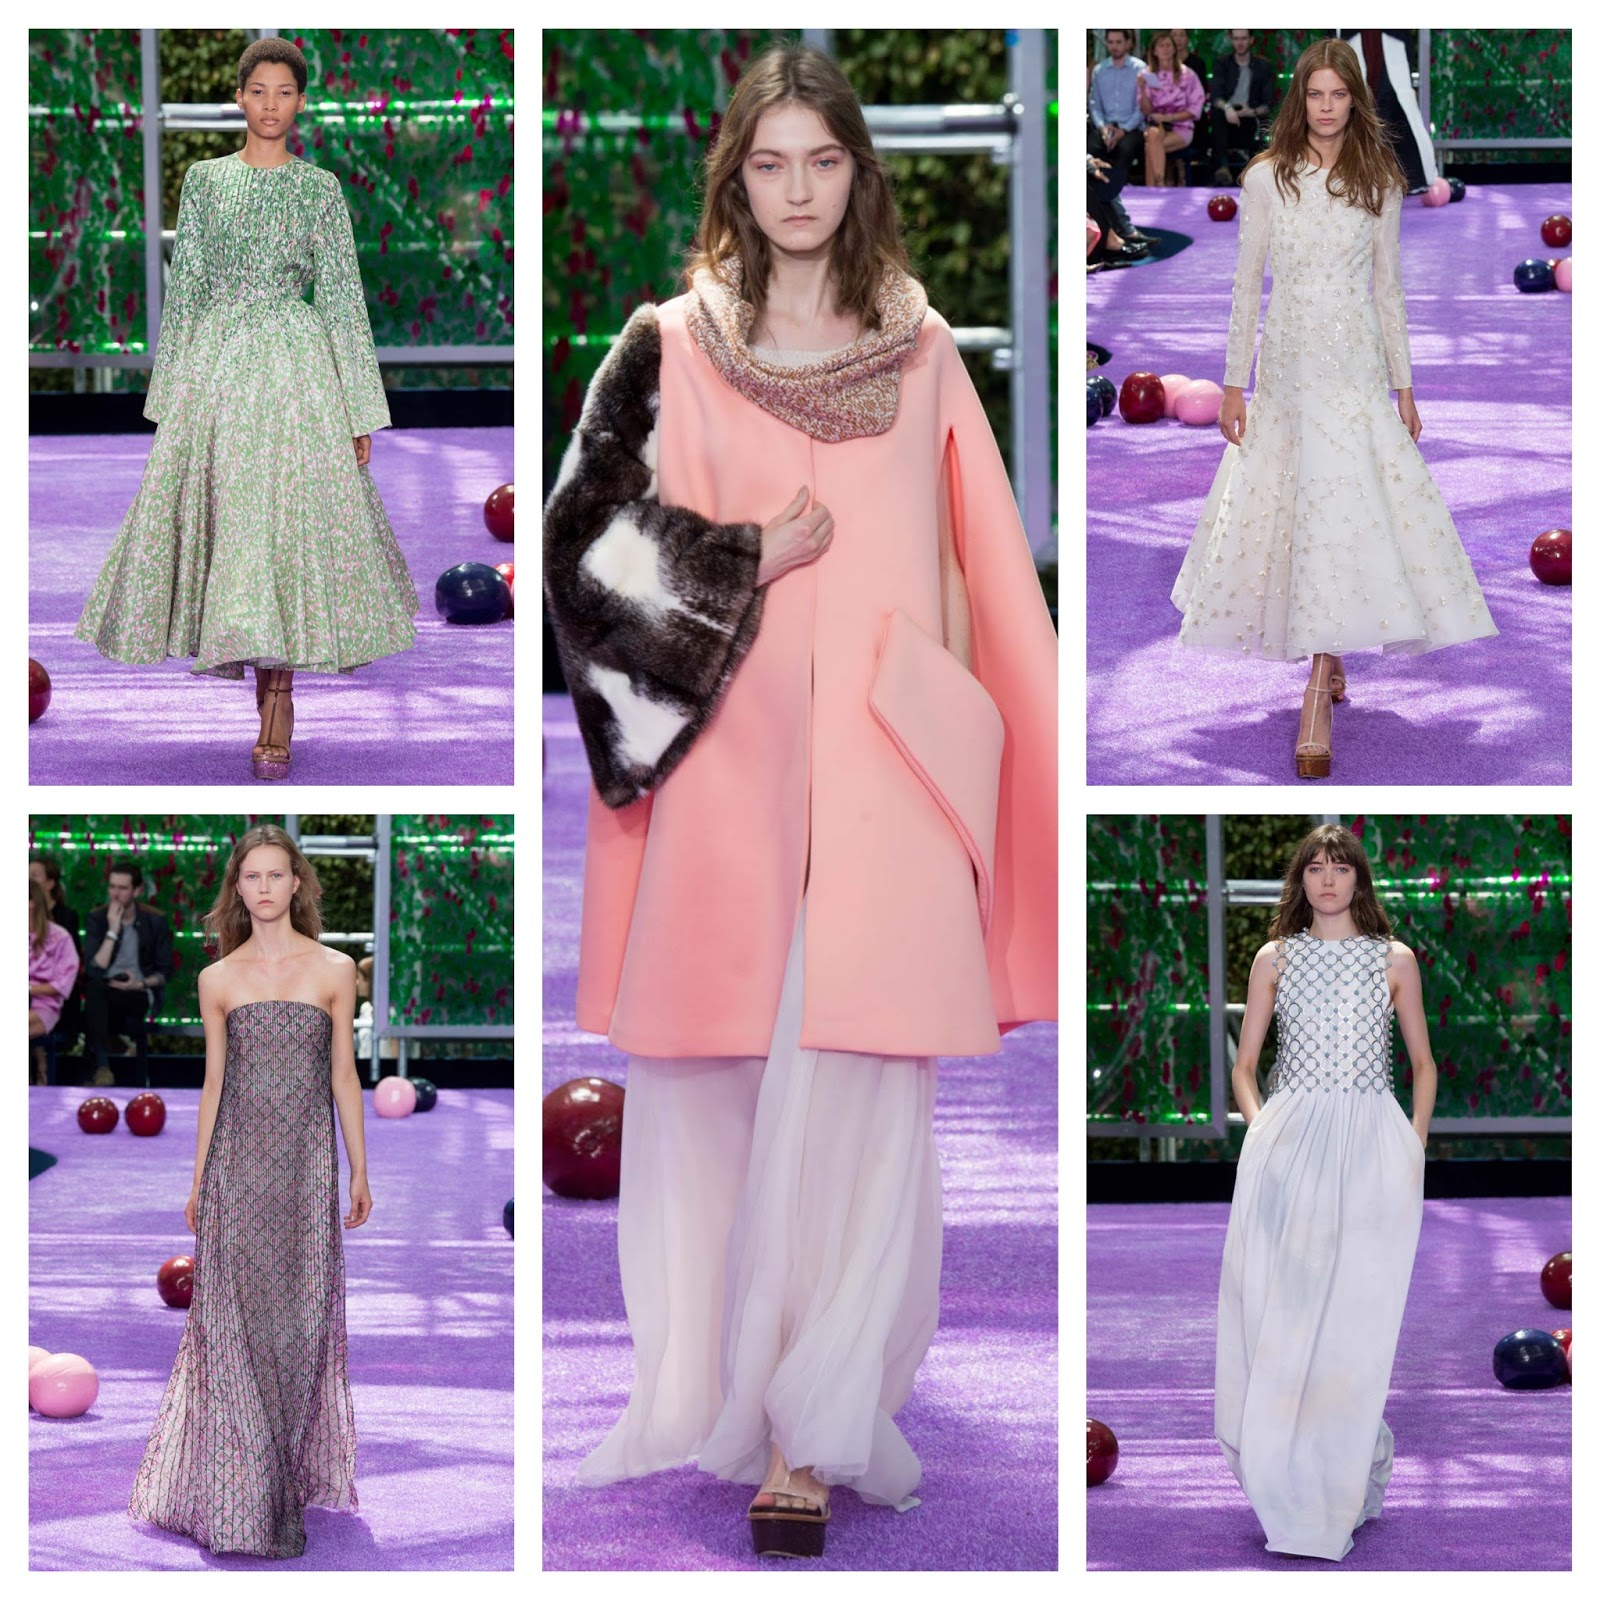 Looks - Dior christian haute couture fall runway video